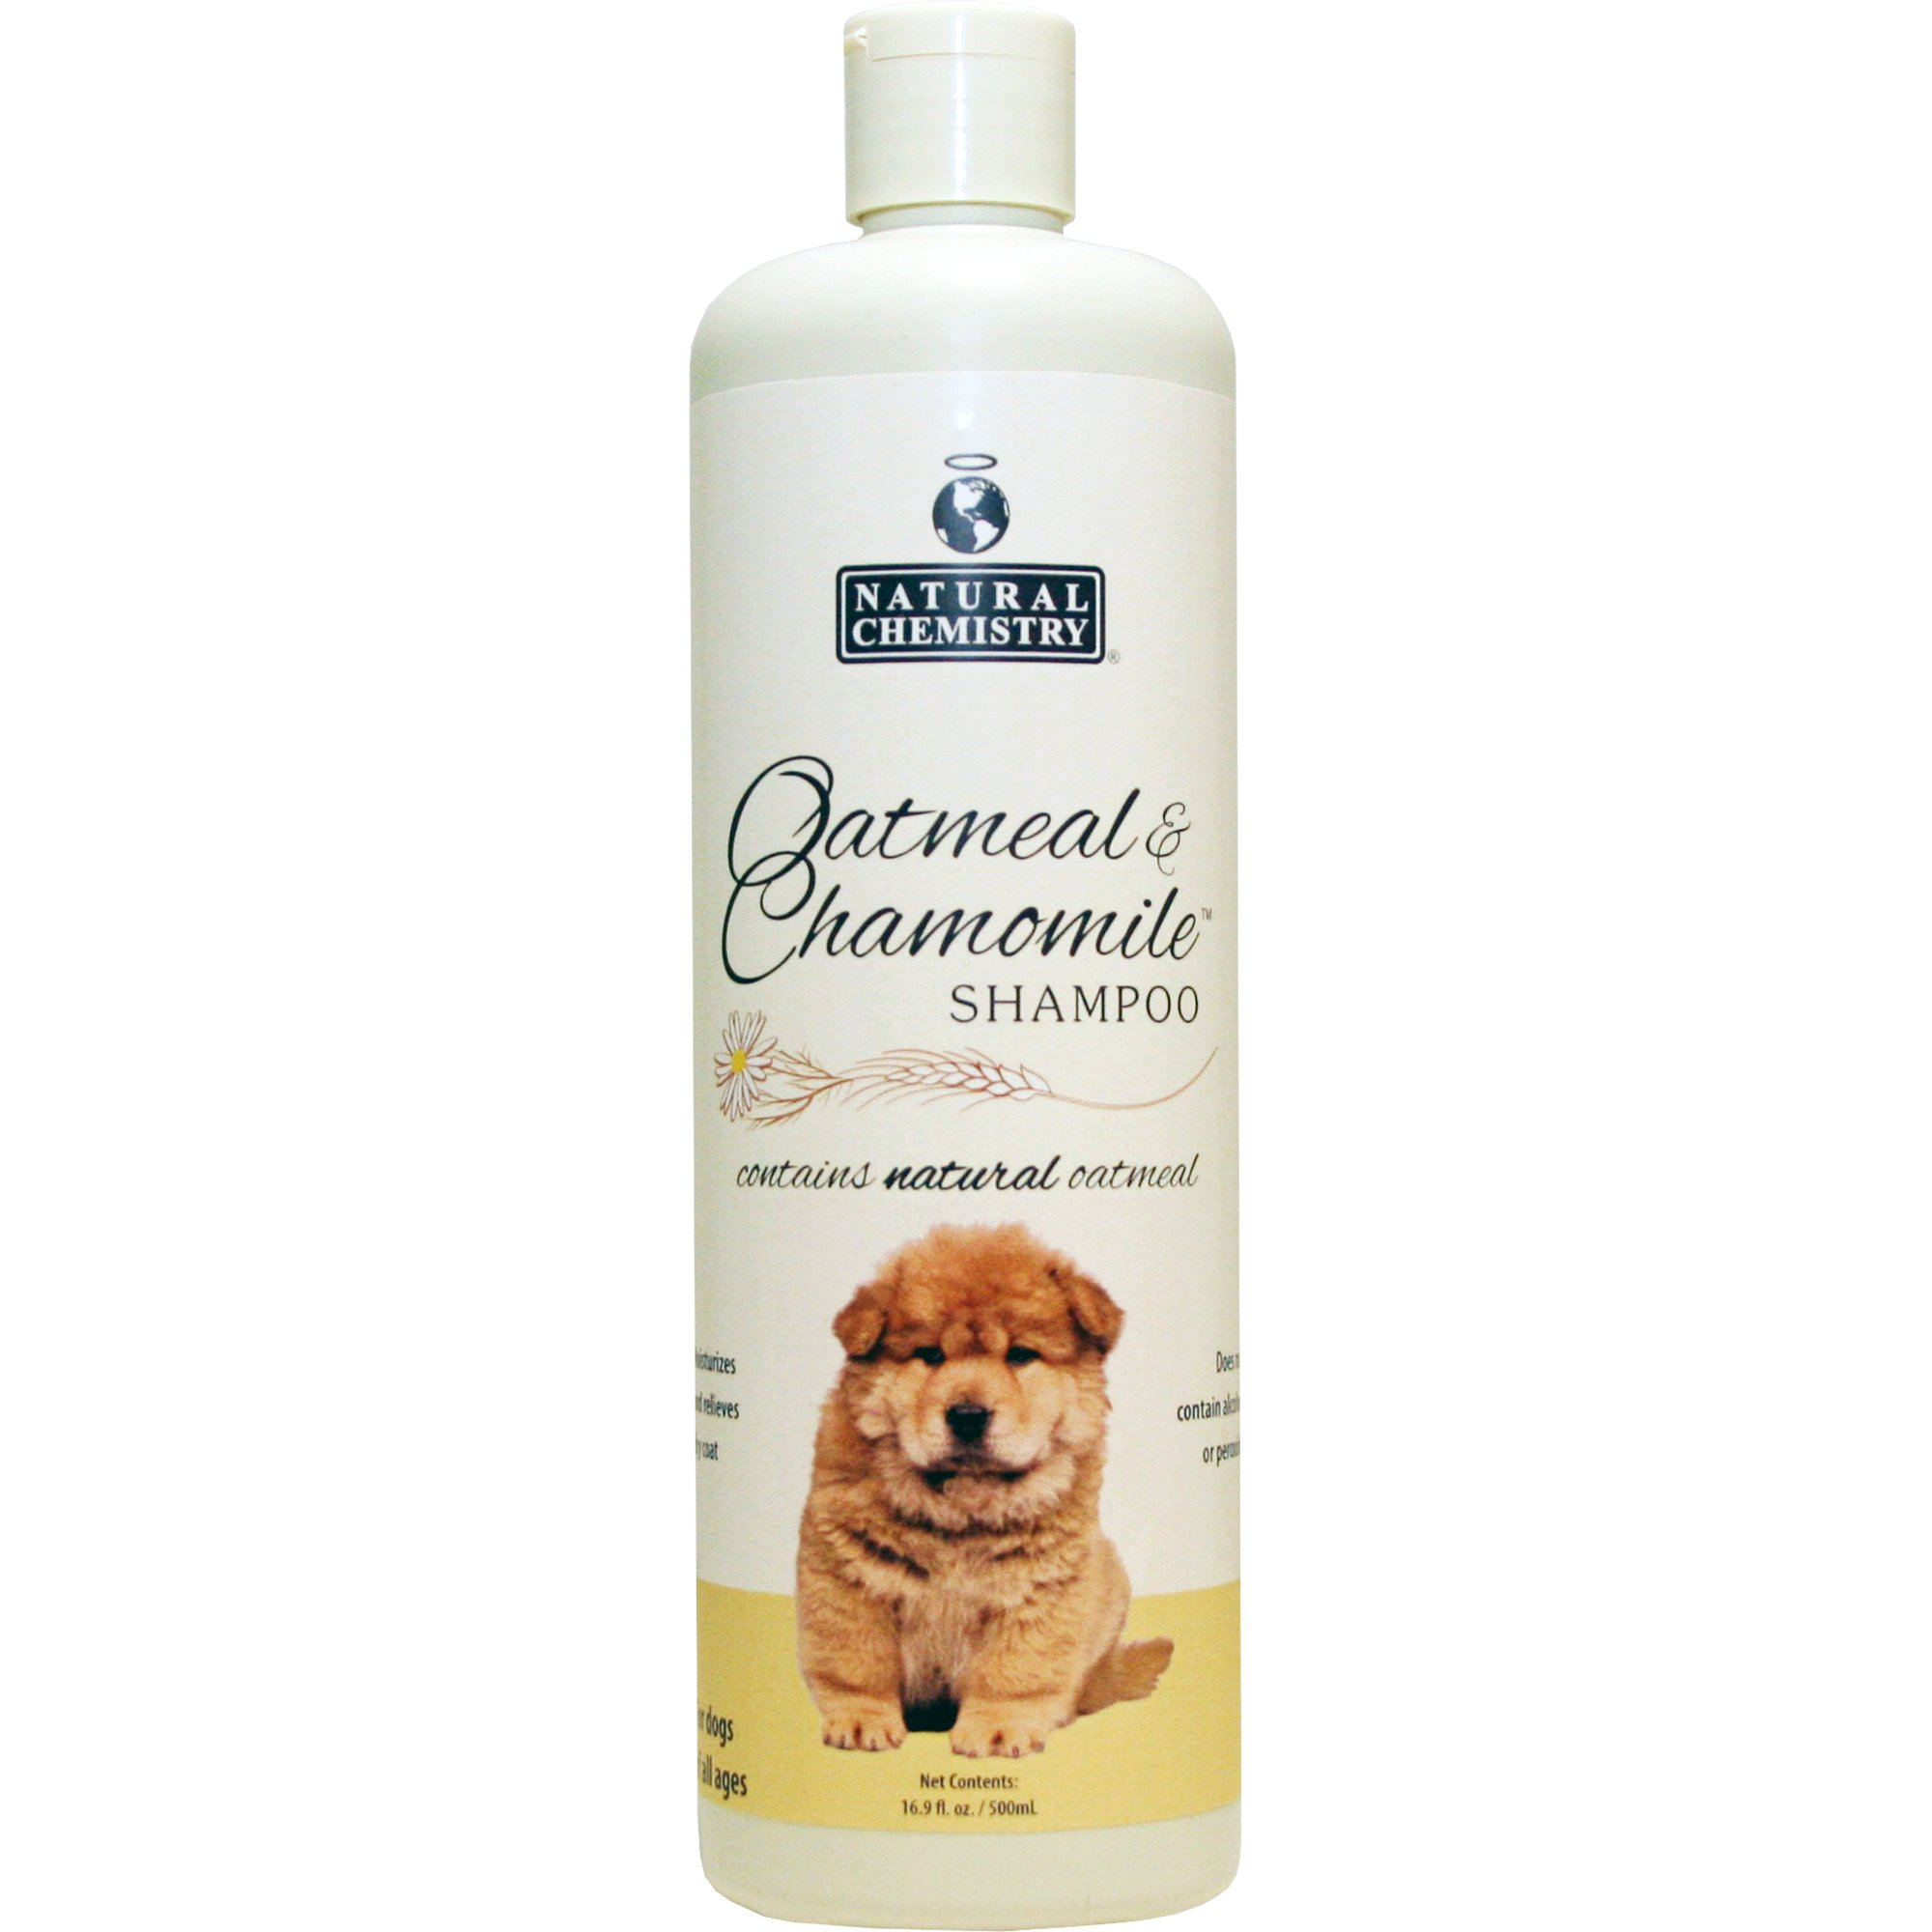 Natural Chemistry Oatmeal and Chamomile Shampoo